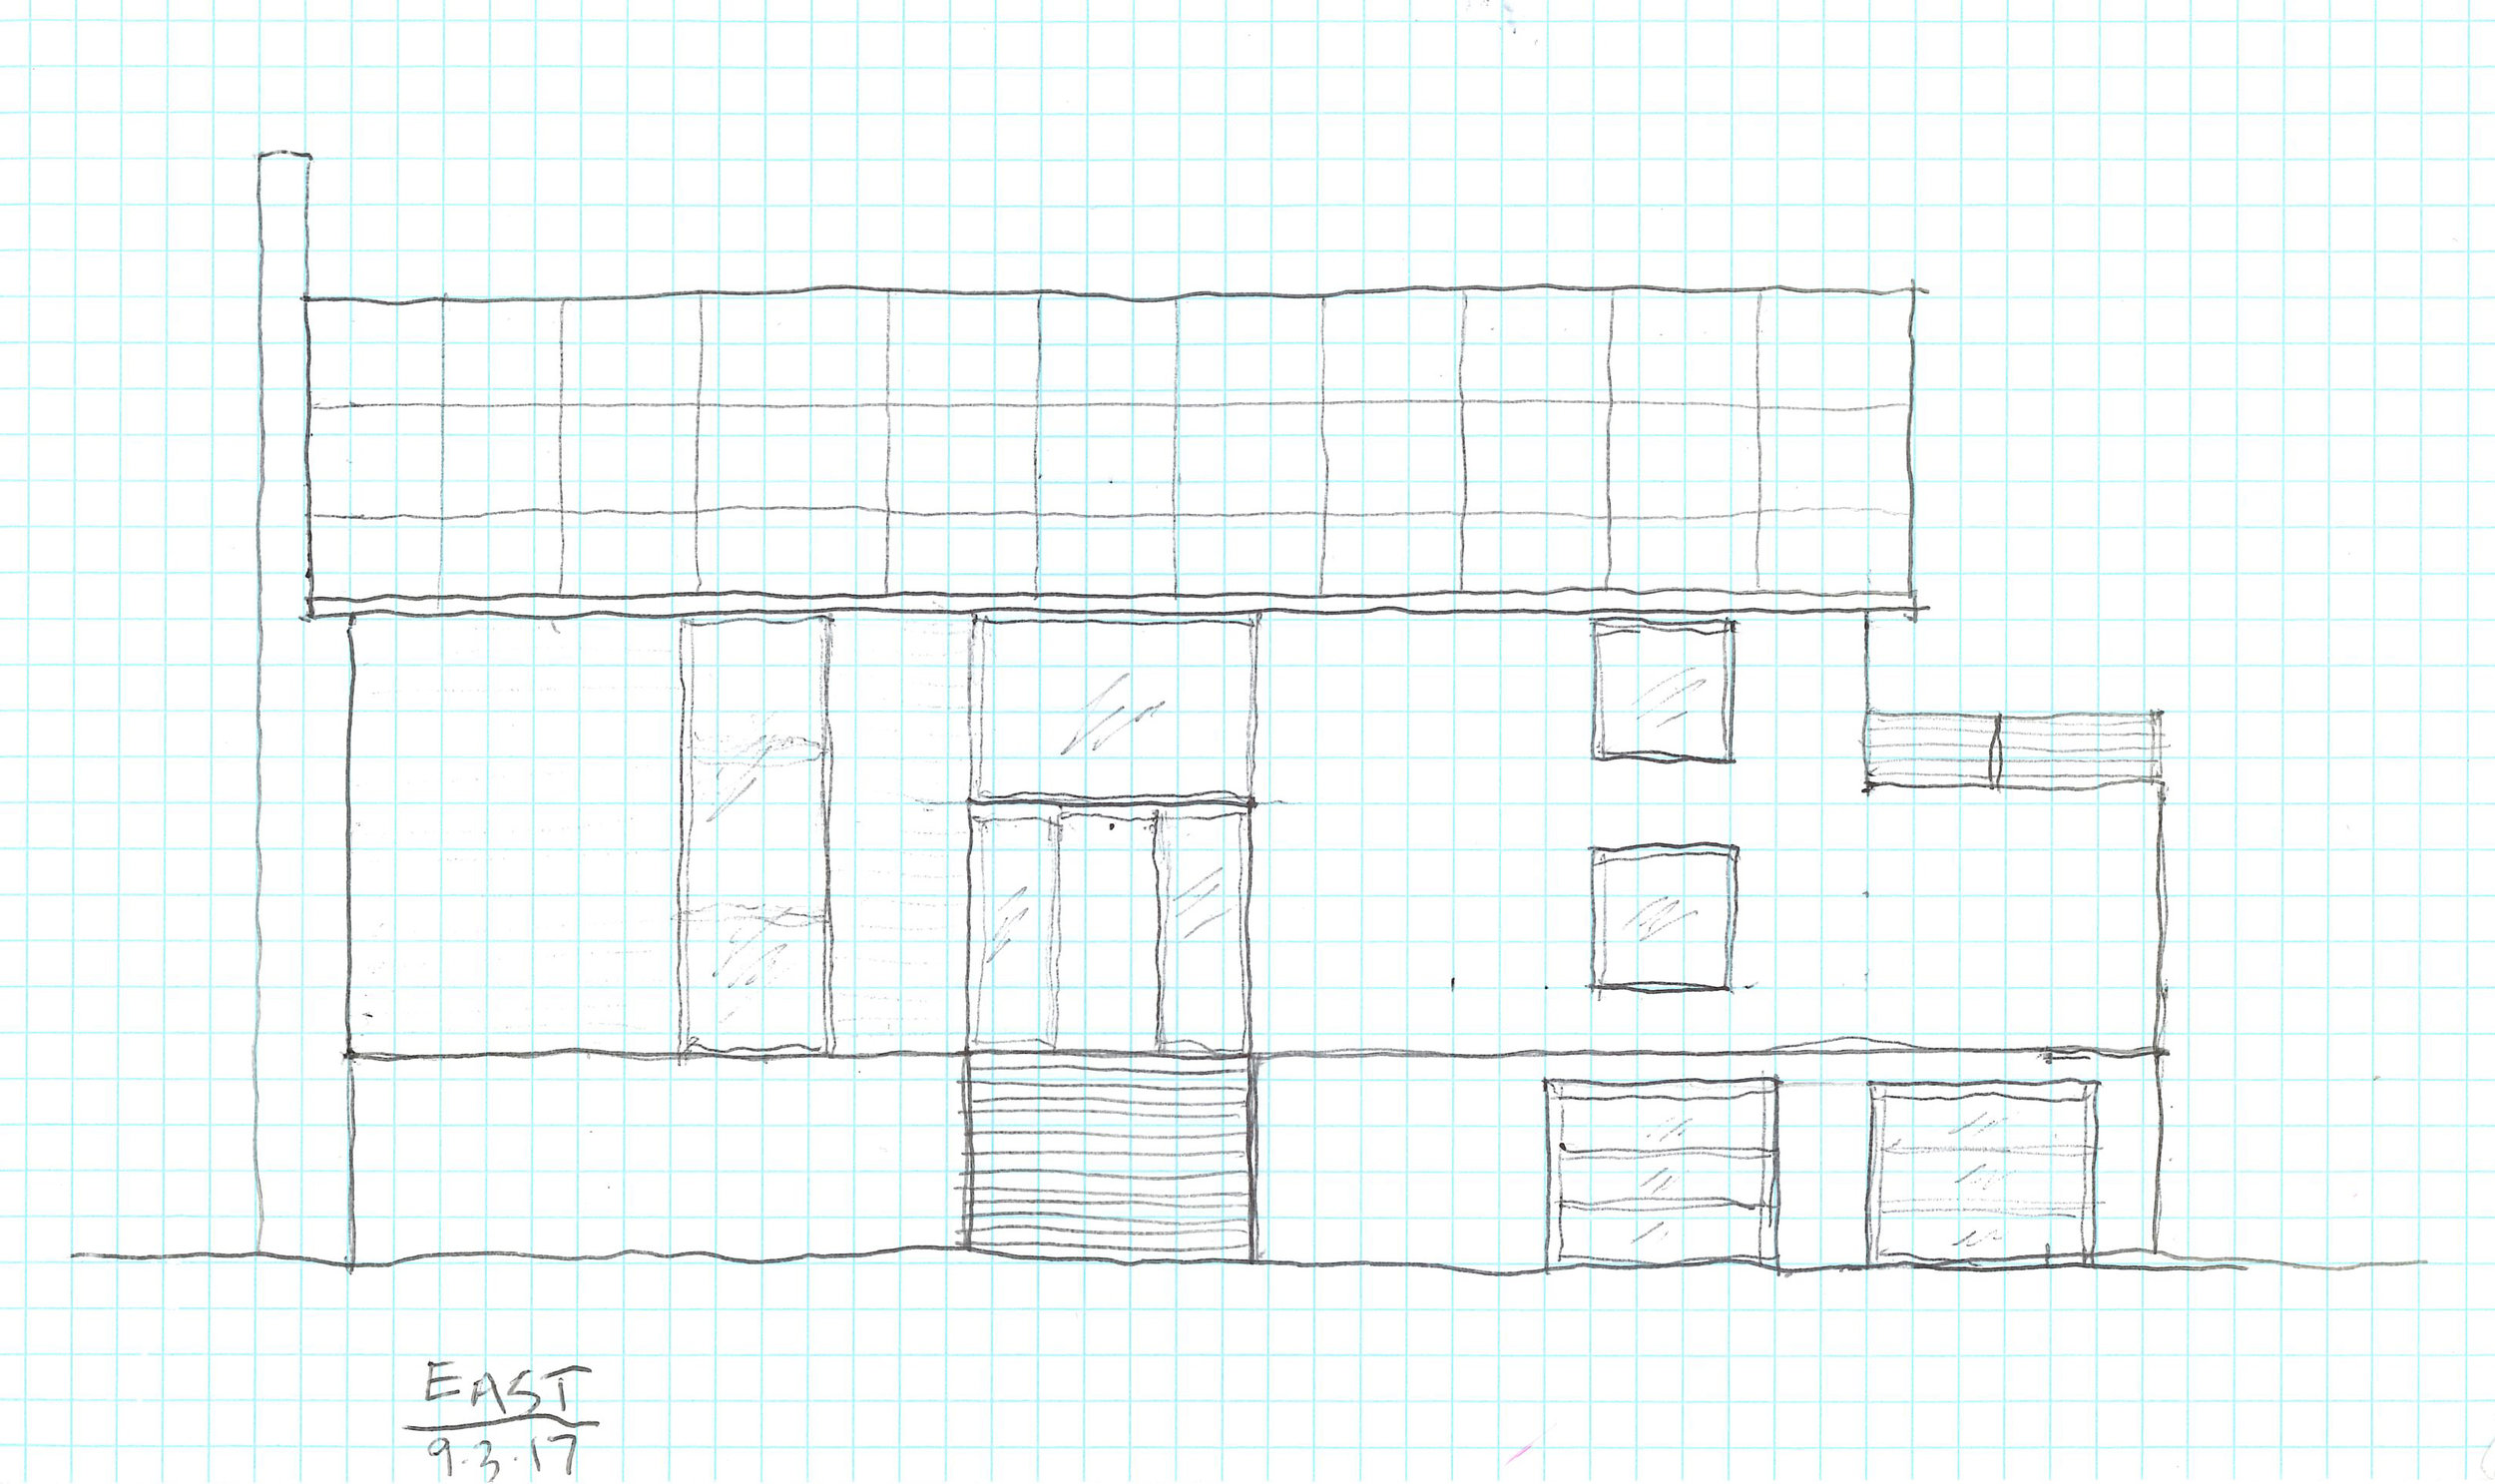 East elevation sketch of the new Granoff residence.  Image courtesy Rich Granoff